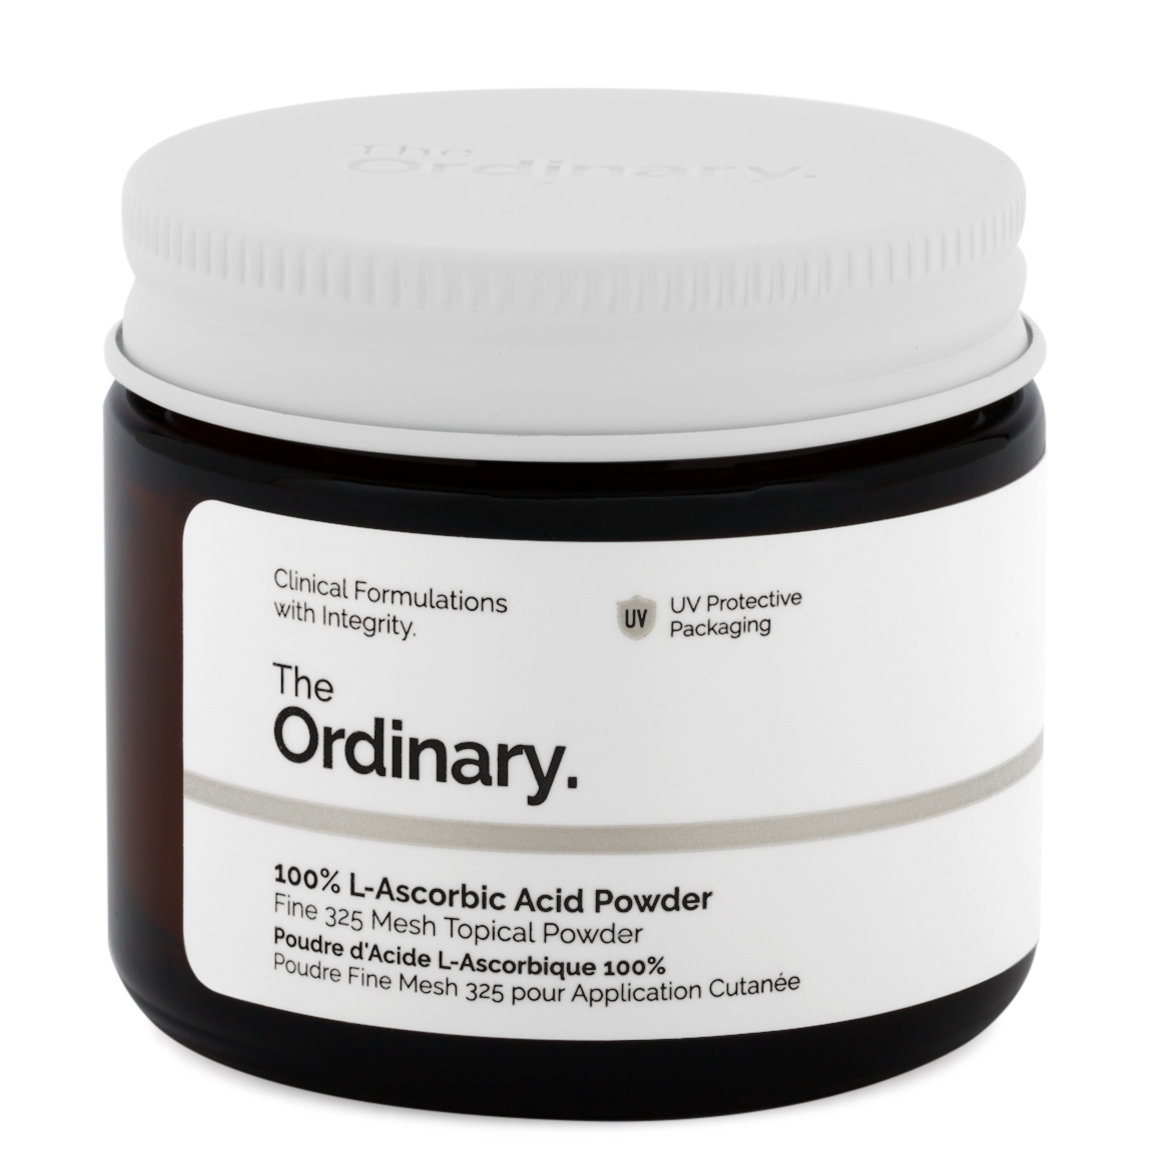 The Ordinary. 100% L-Ascorbic Acid Powder product smear.